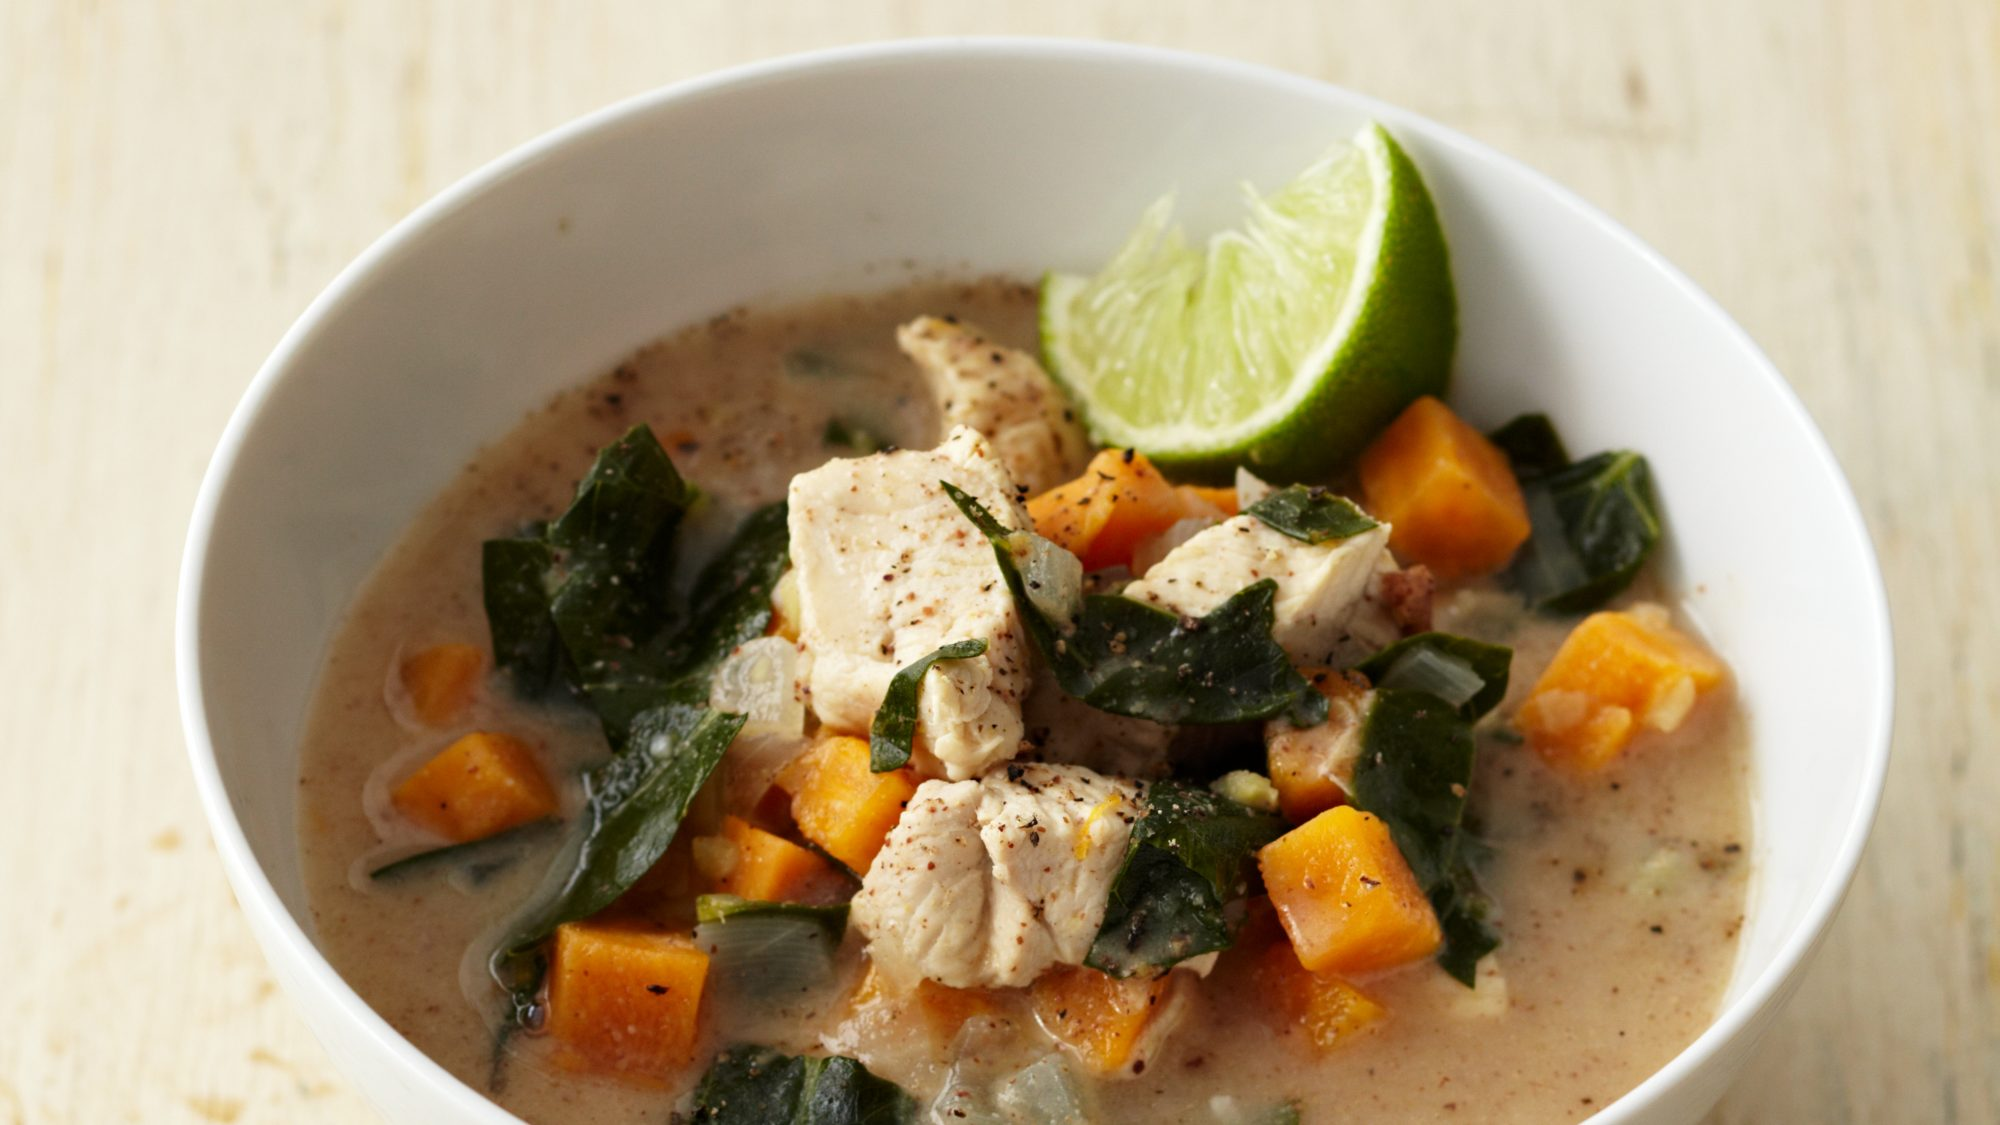 EXPLORE Martha Stewart Profile Menu Martha's Blog Your Account Login SUBSCRIBE MARTHASTEWART.COM FOOD & COOKING RECIPES SOUPS, STEWS & STOCKS SOUP RECIPES Almond Chicken Soup with Sweet Potato, Collards, and Ginger Almond Chicken Soup with Sweet Potato, Collards, and Ginger